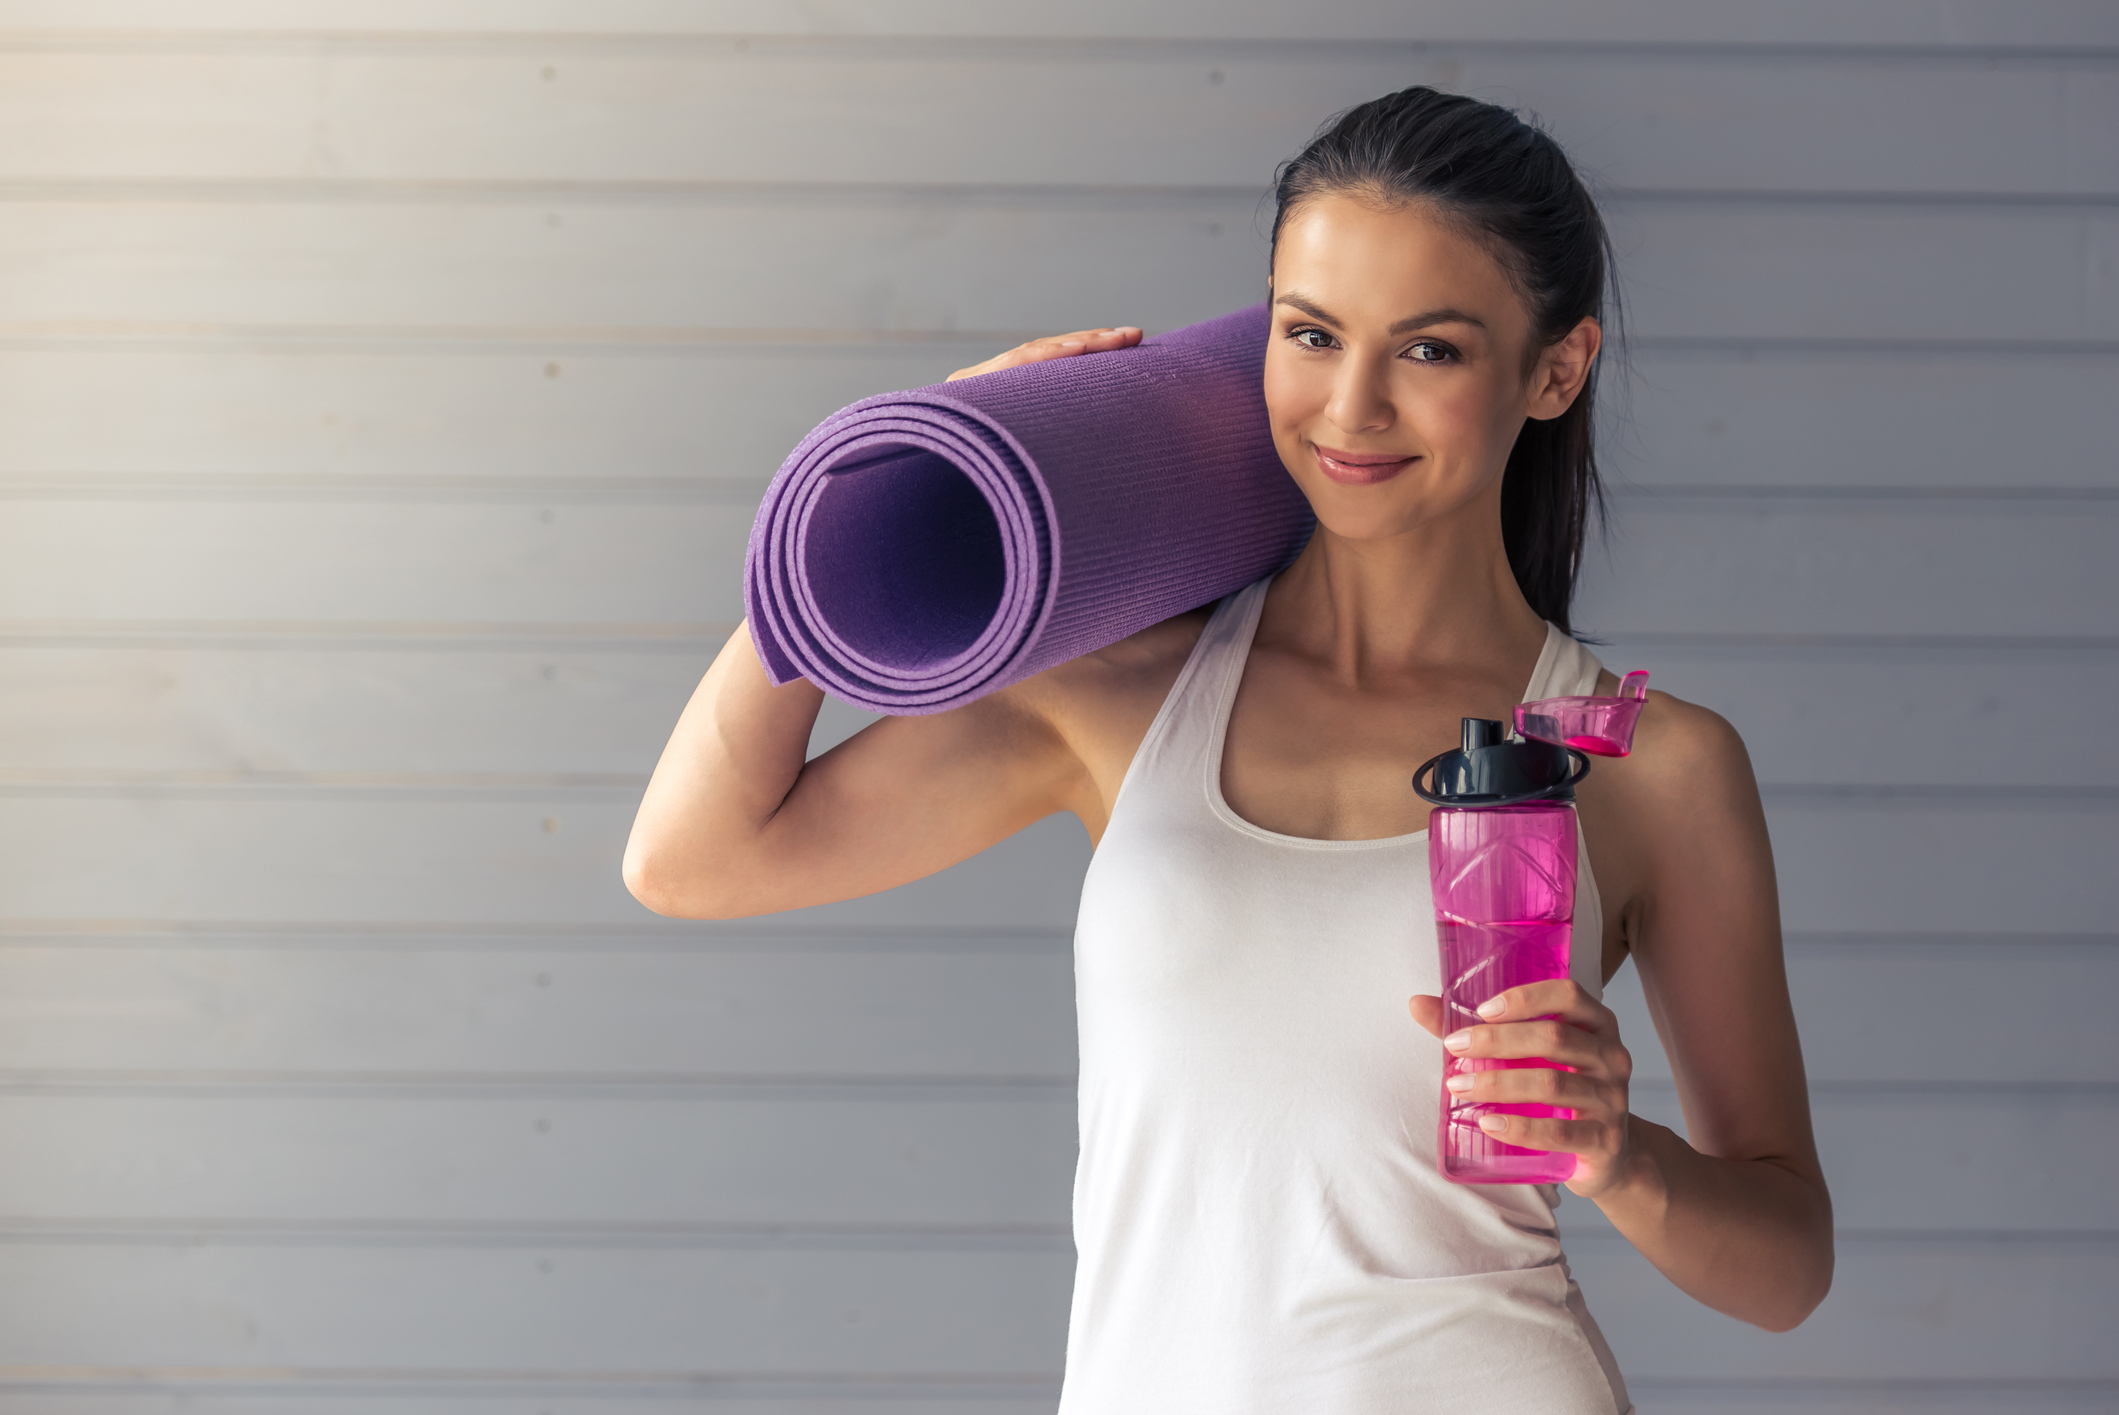 Generic photo of woman holding yoga mat and water bottle (Thinkstock/PA)